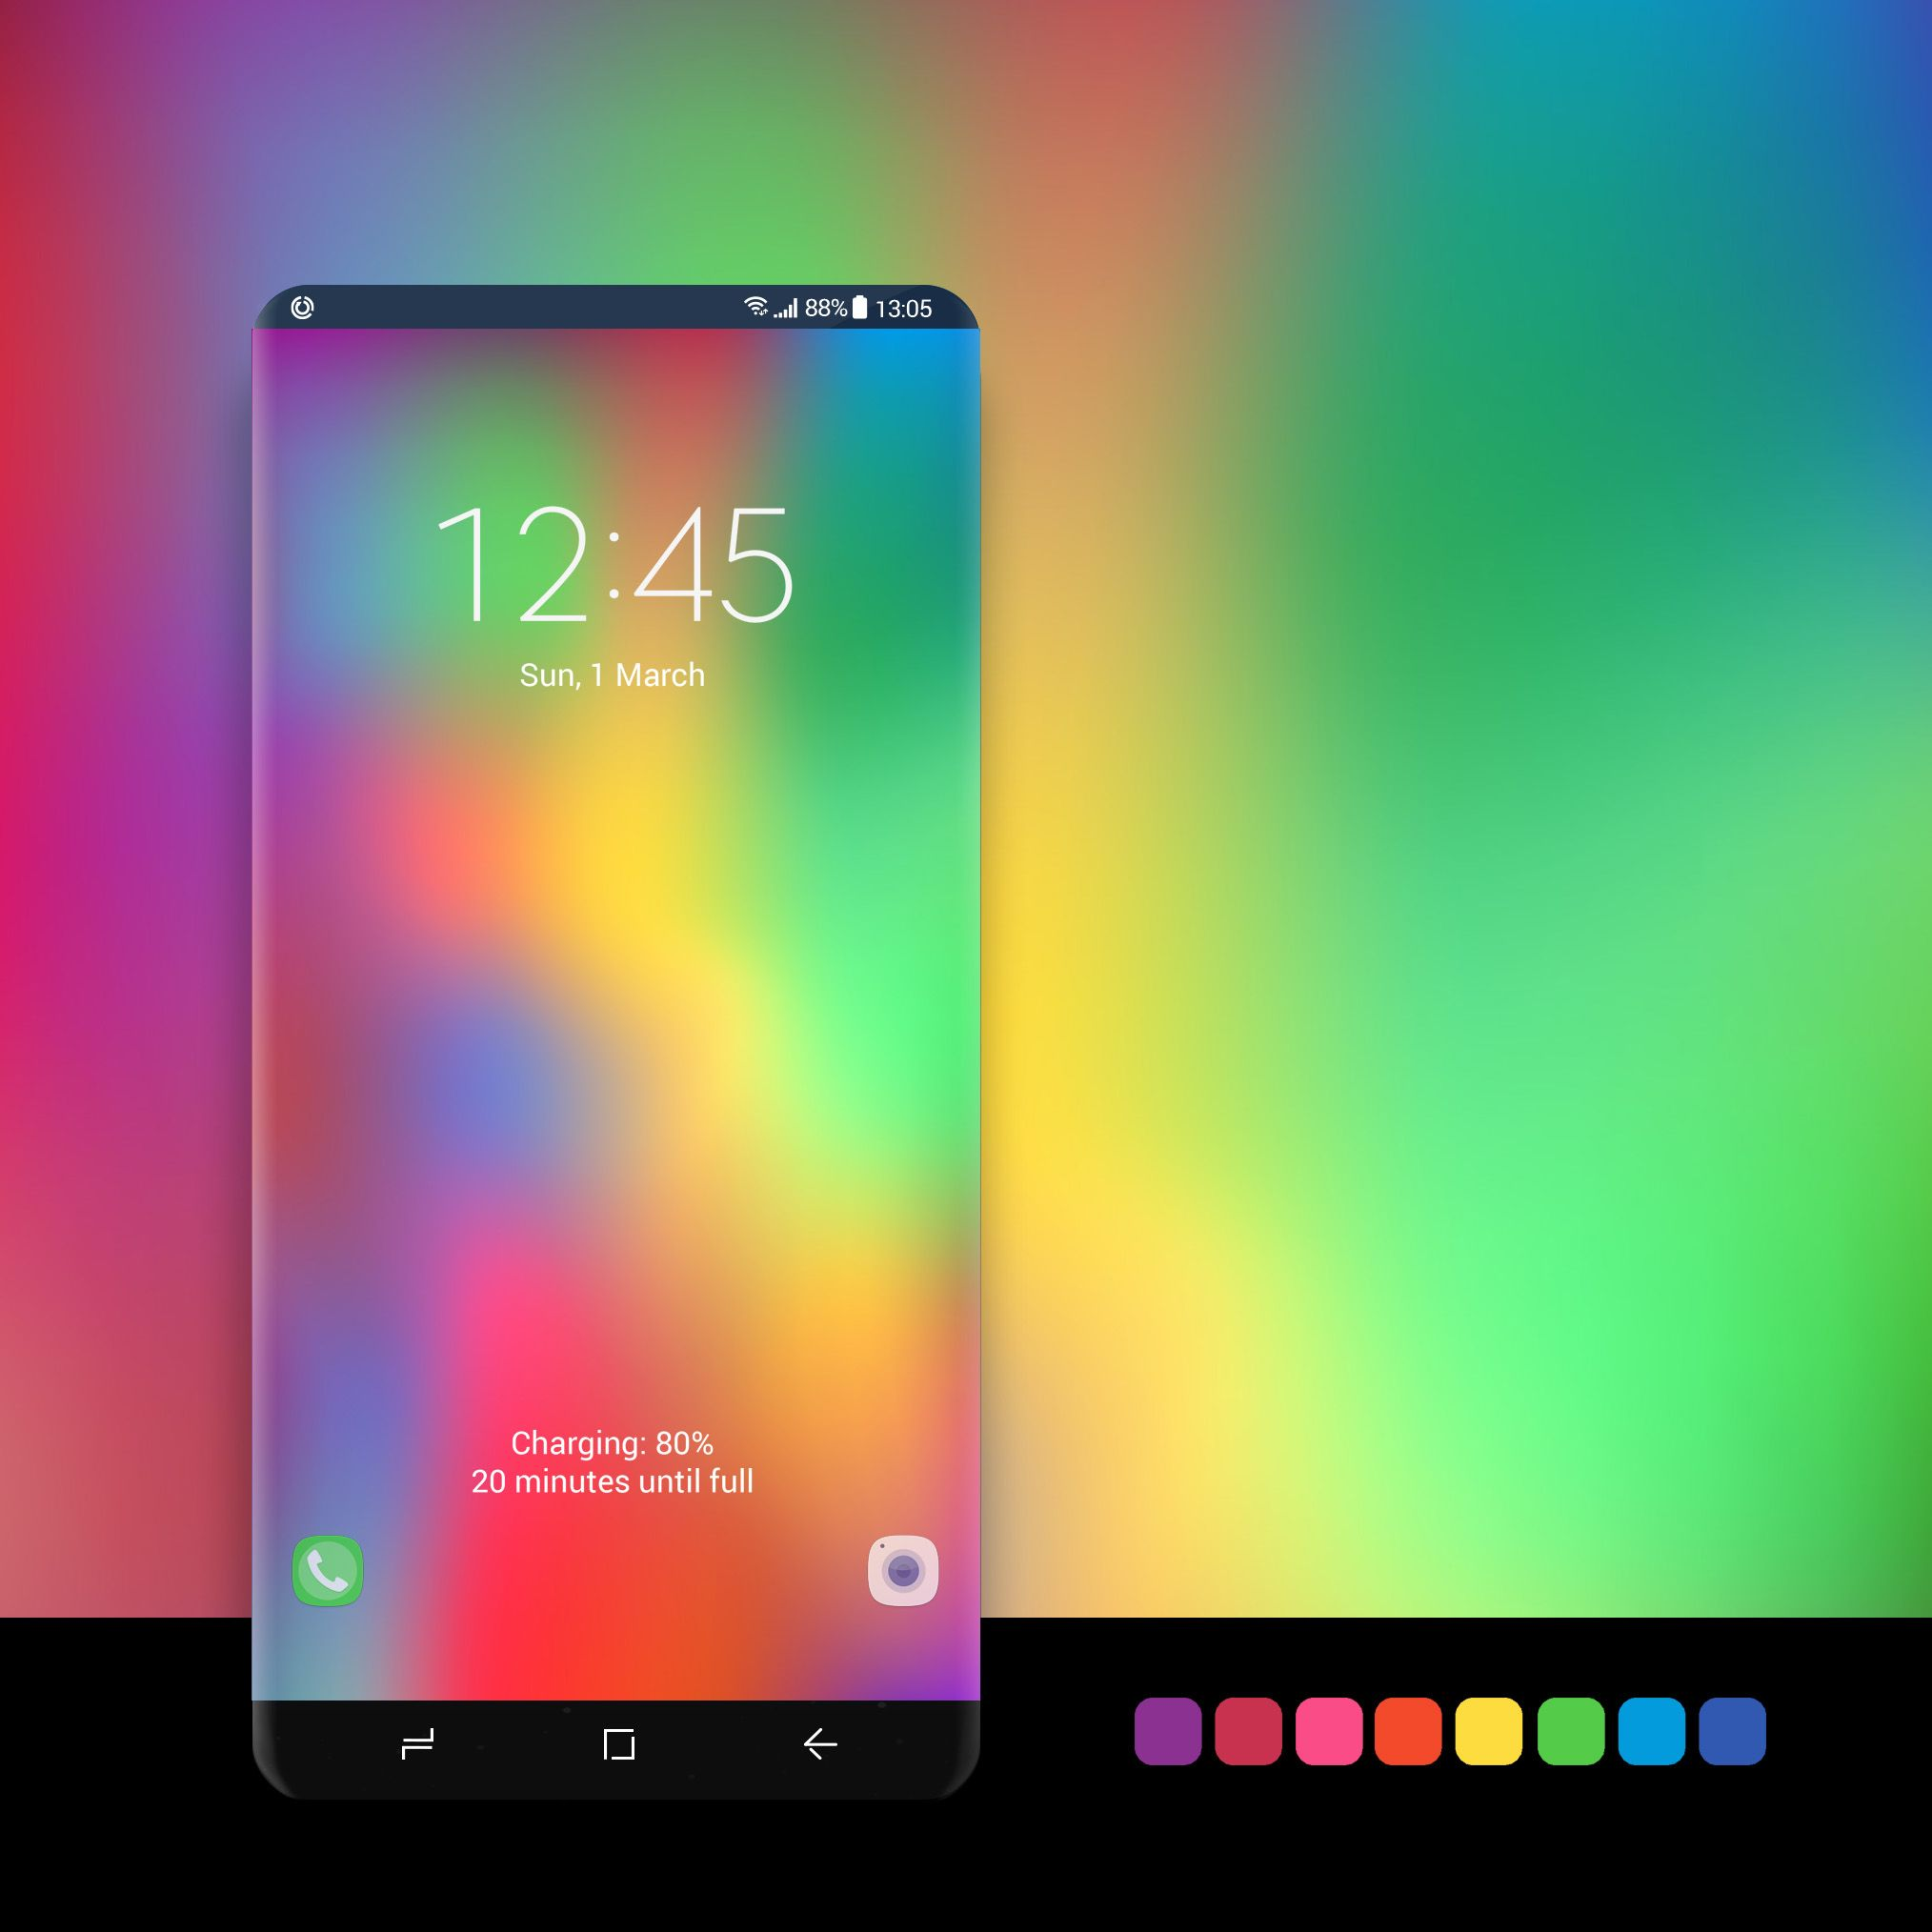 Blurred rainbow abstract wallpaper * - Available for Global